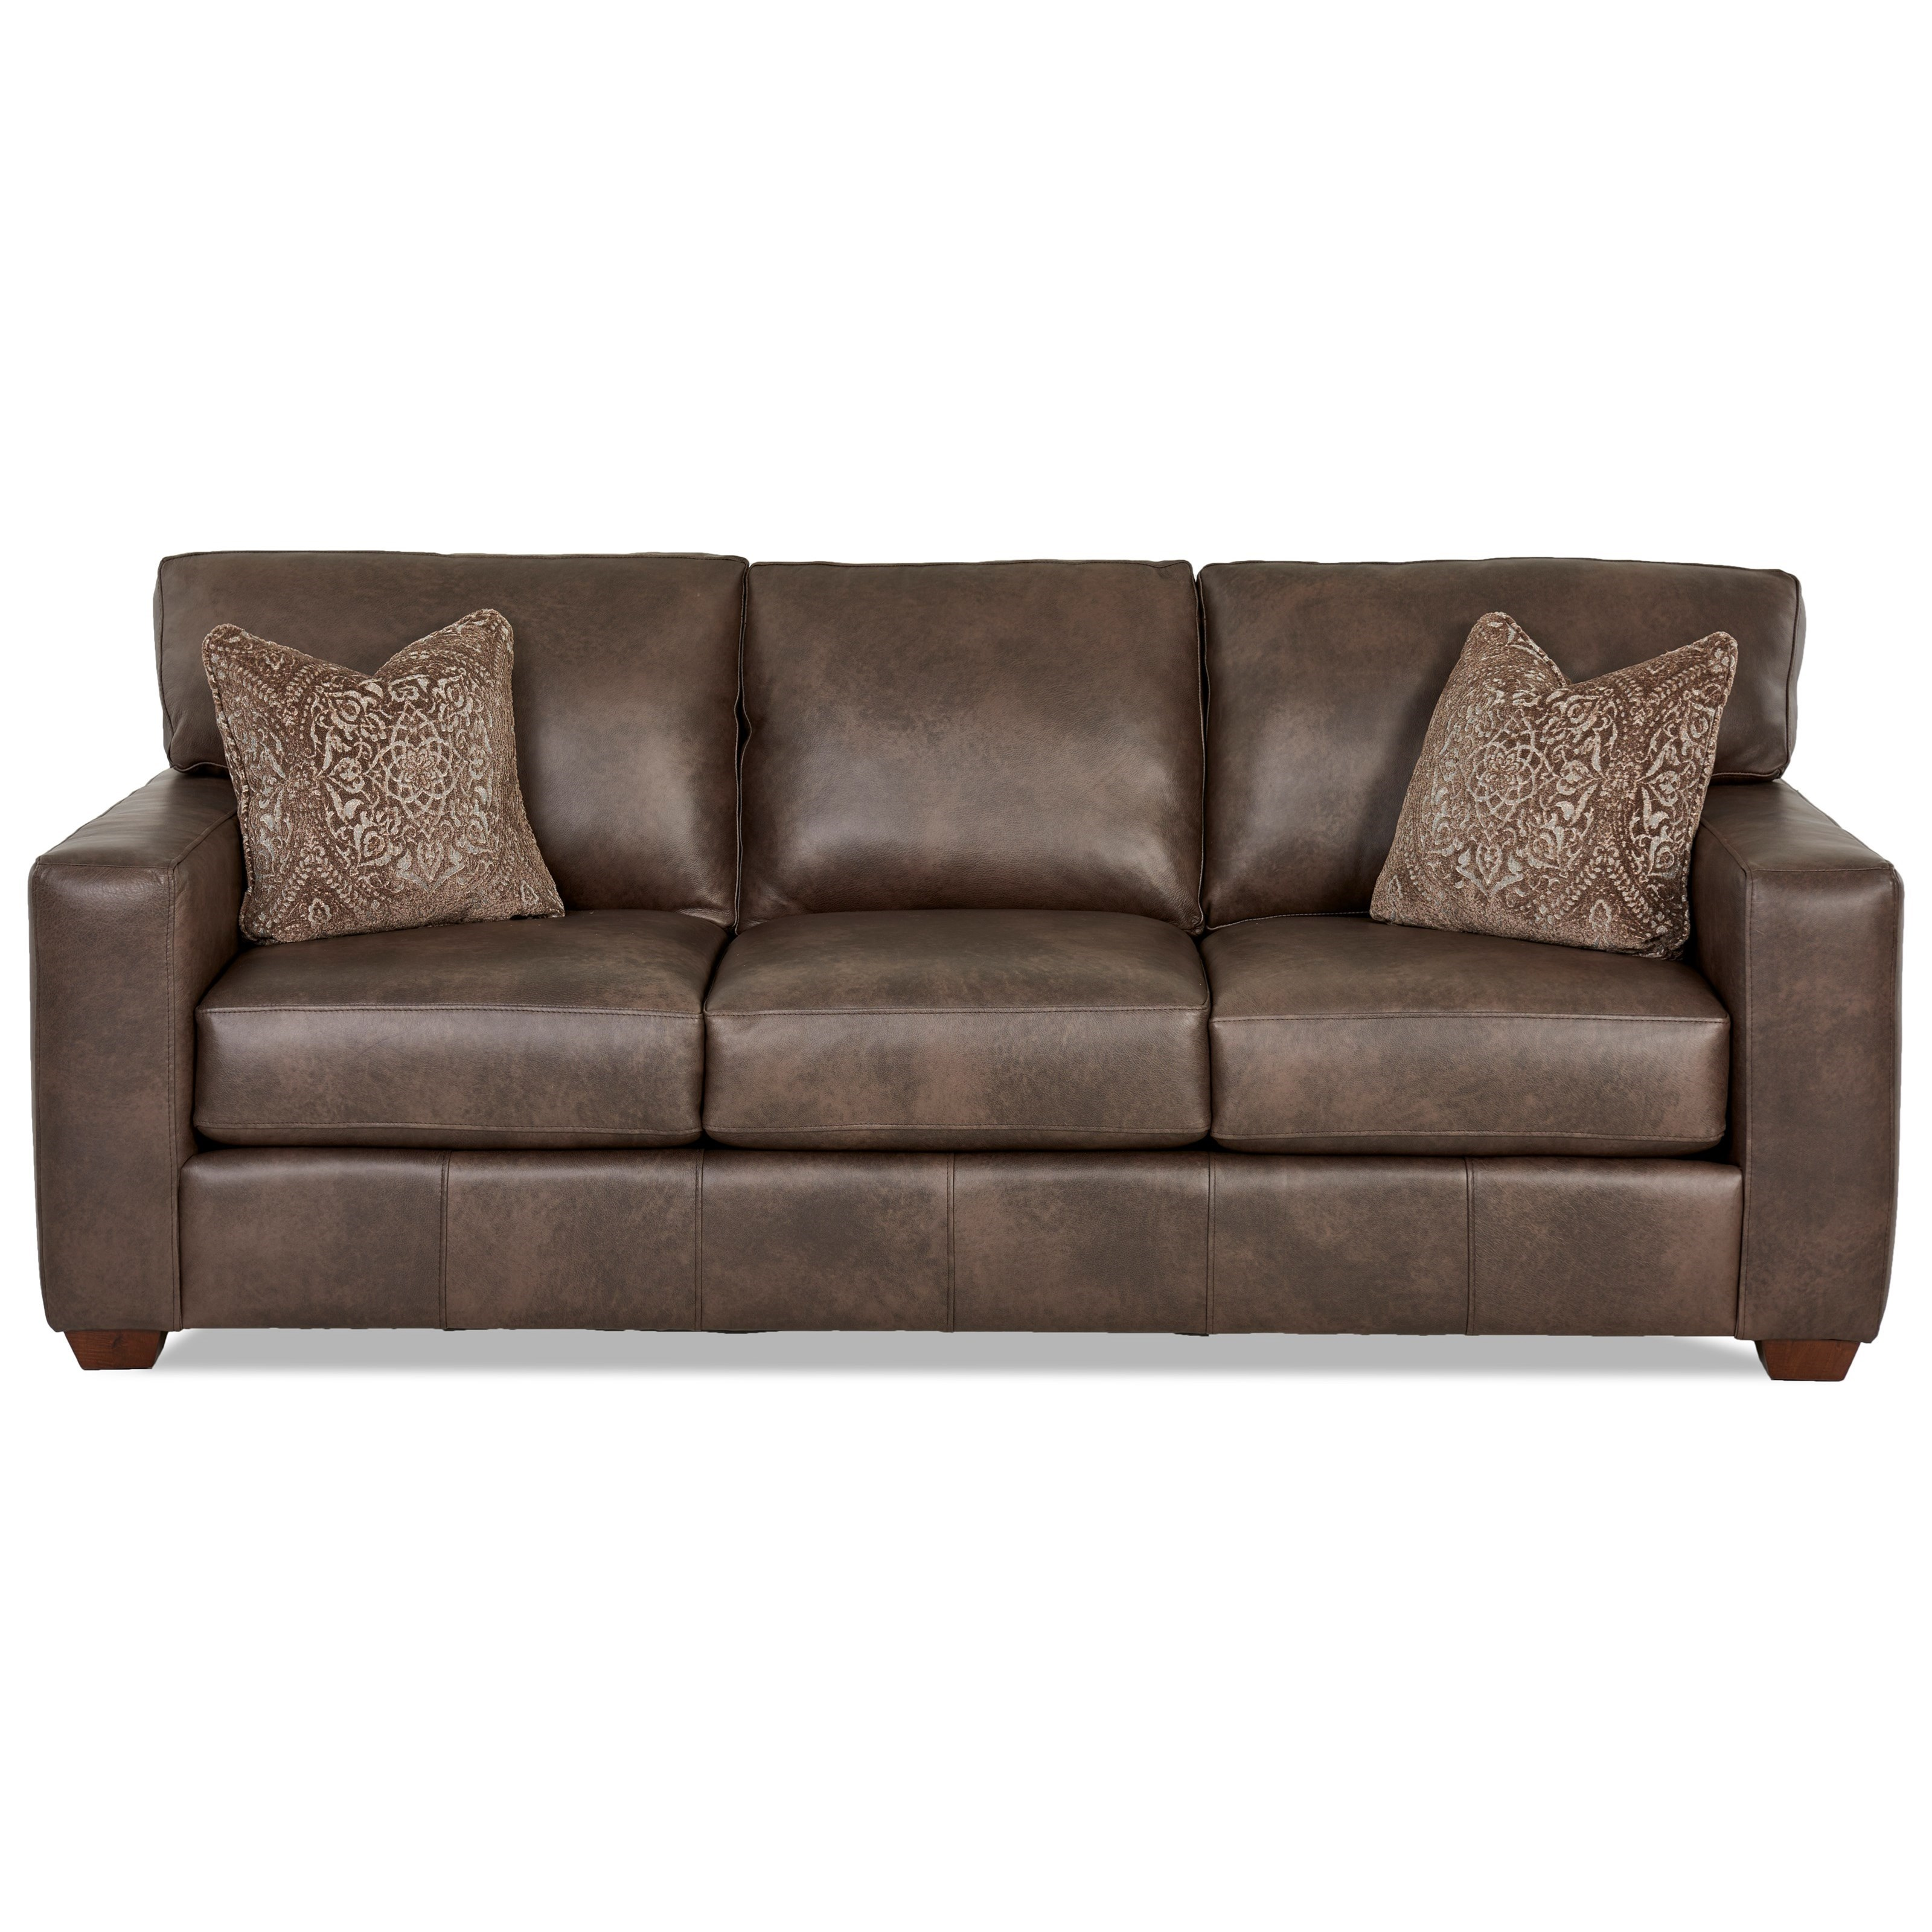 Klaussner southport contemporary leather sofa with pillows for Best pillows for leather couch